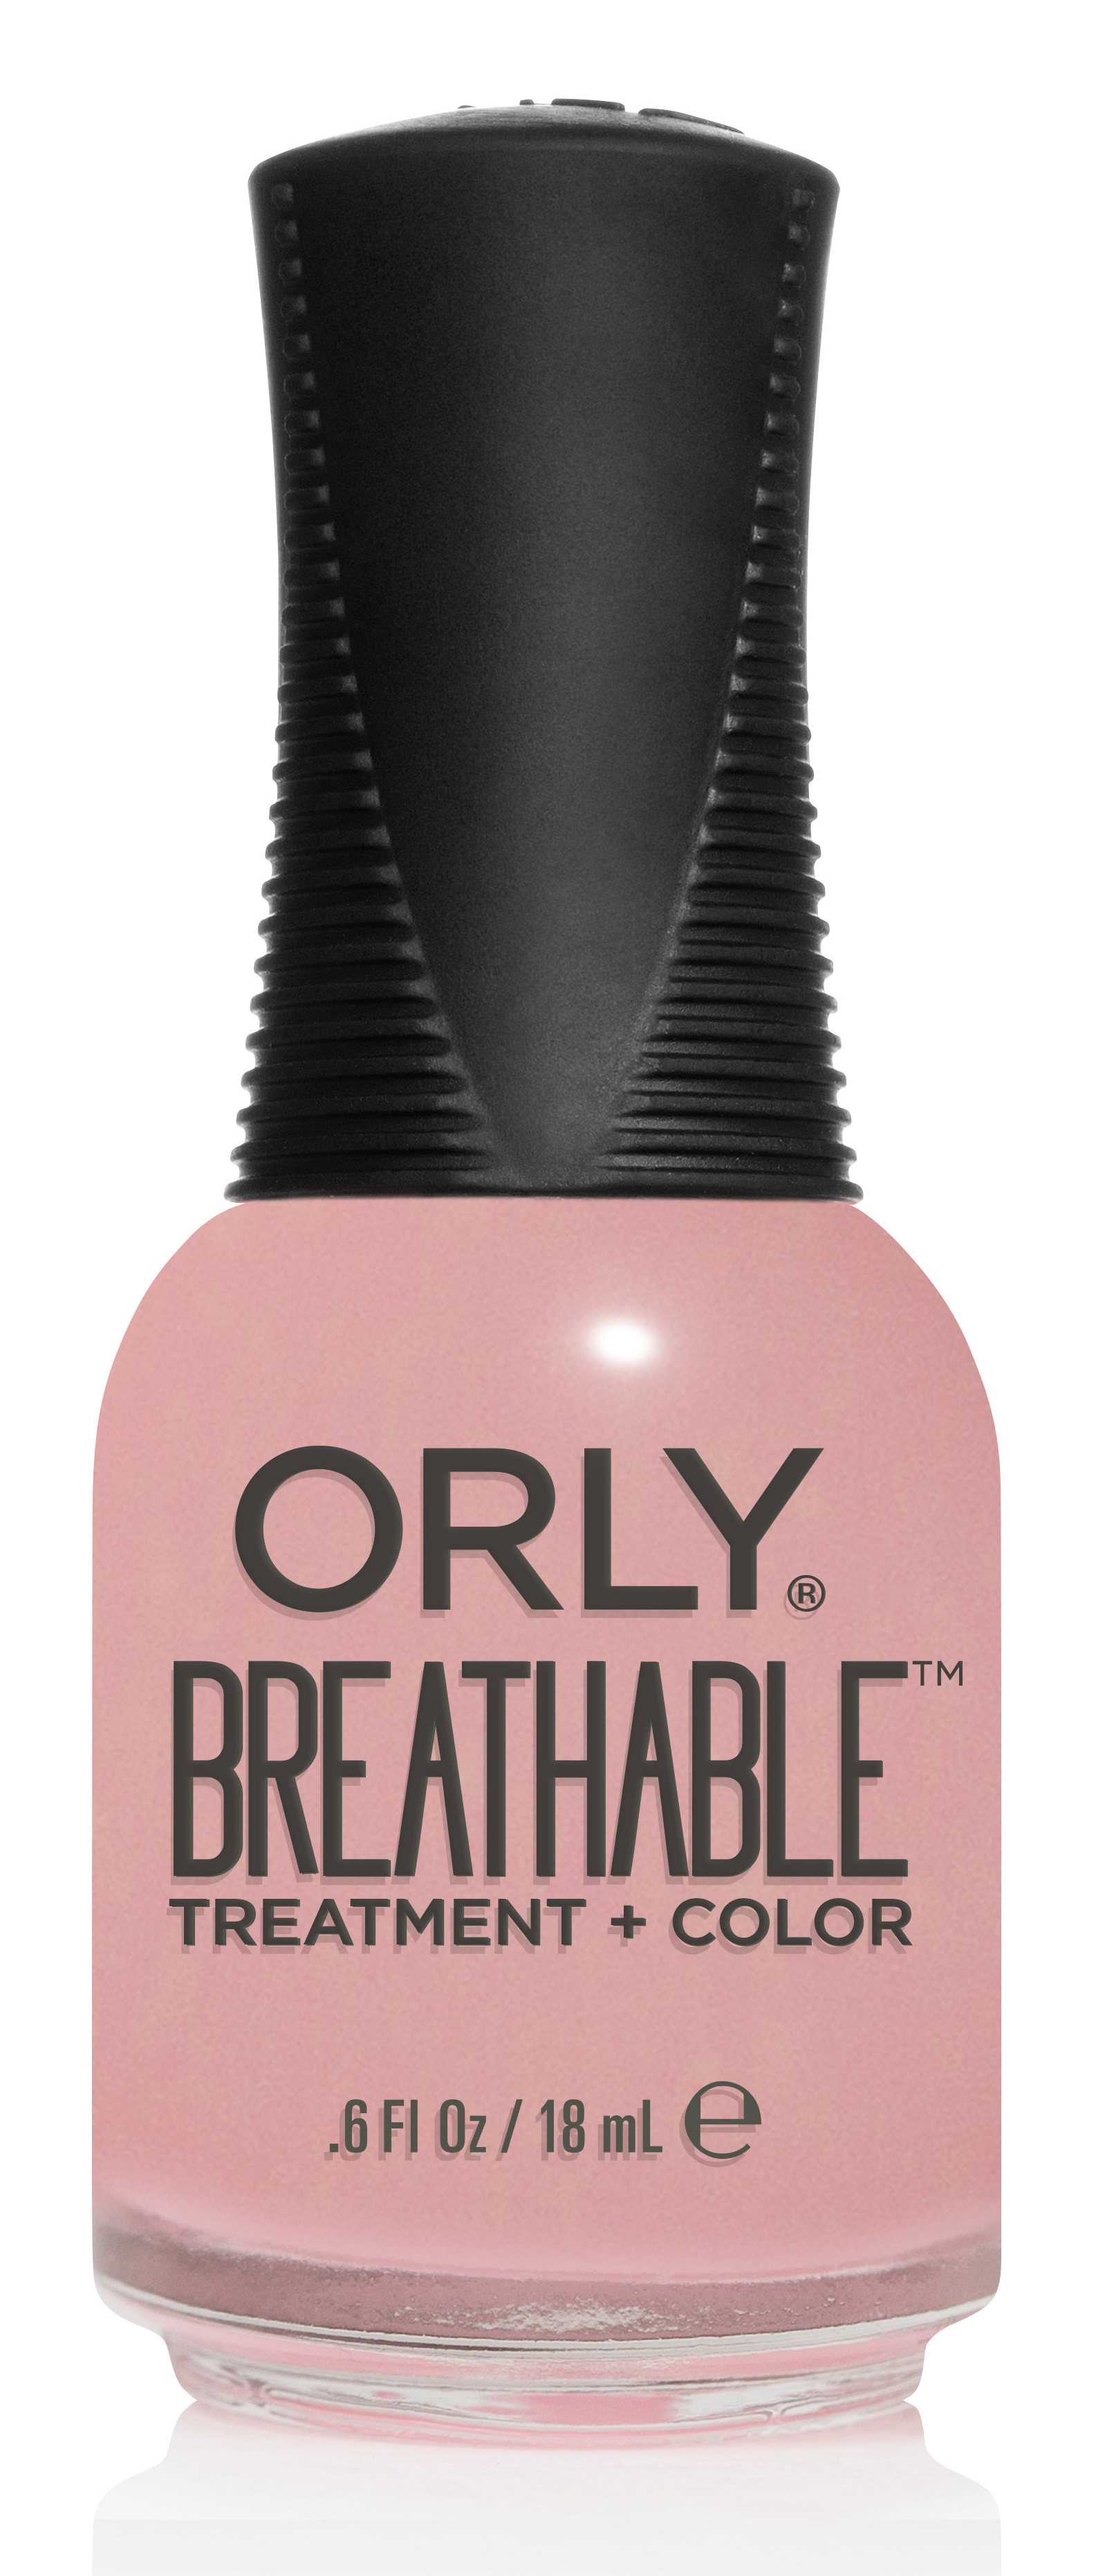 ORLY Лак для ногтей 966 SHEER LUCK / BREATHABLE 18 мл -  Лаки